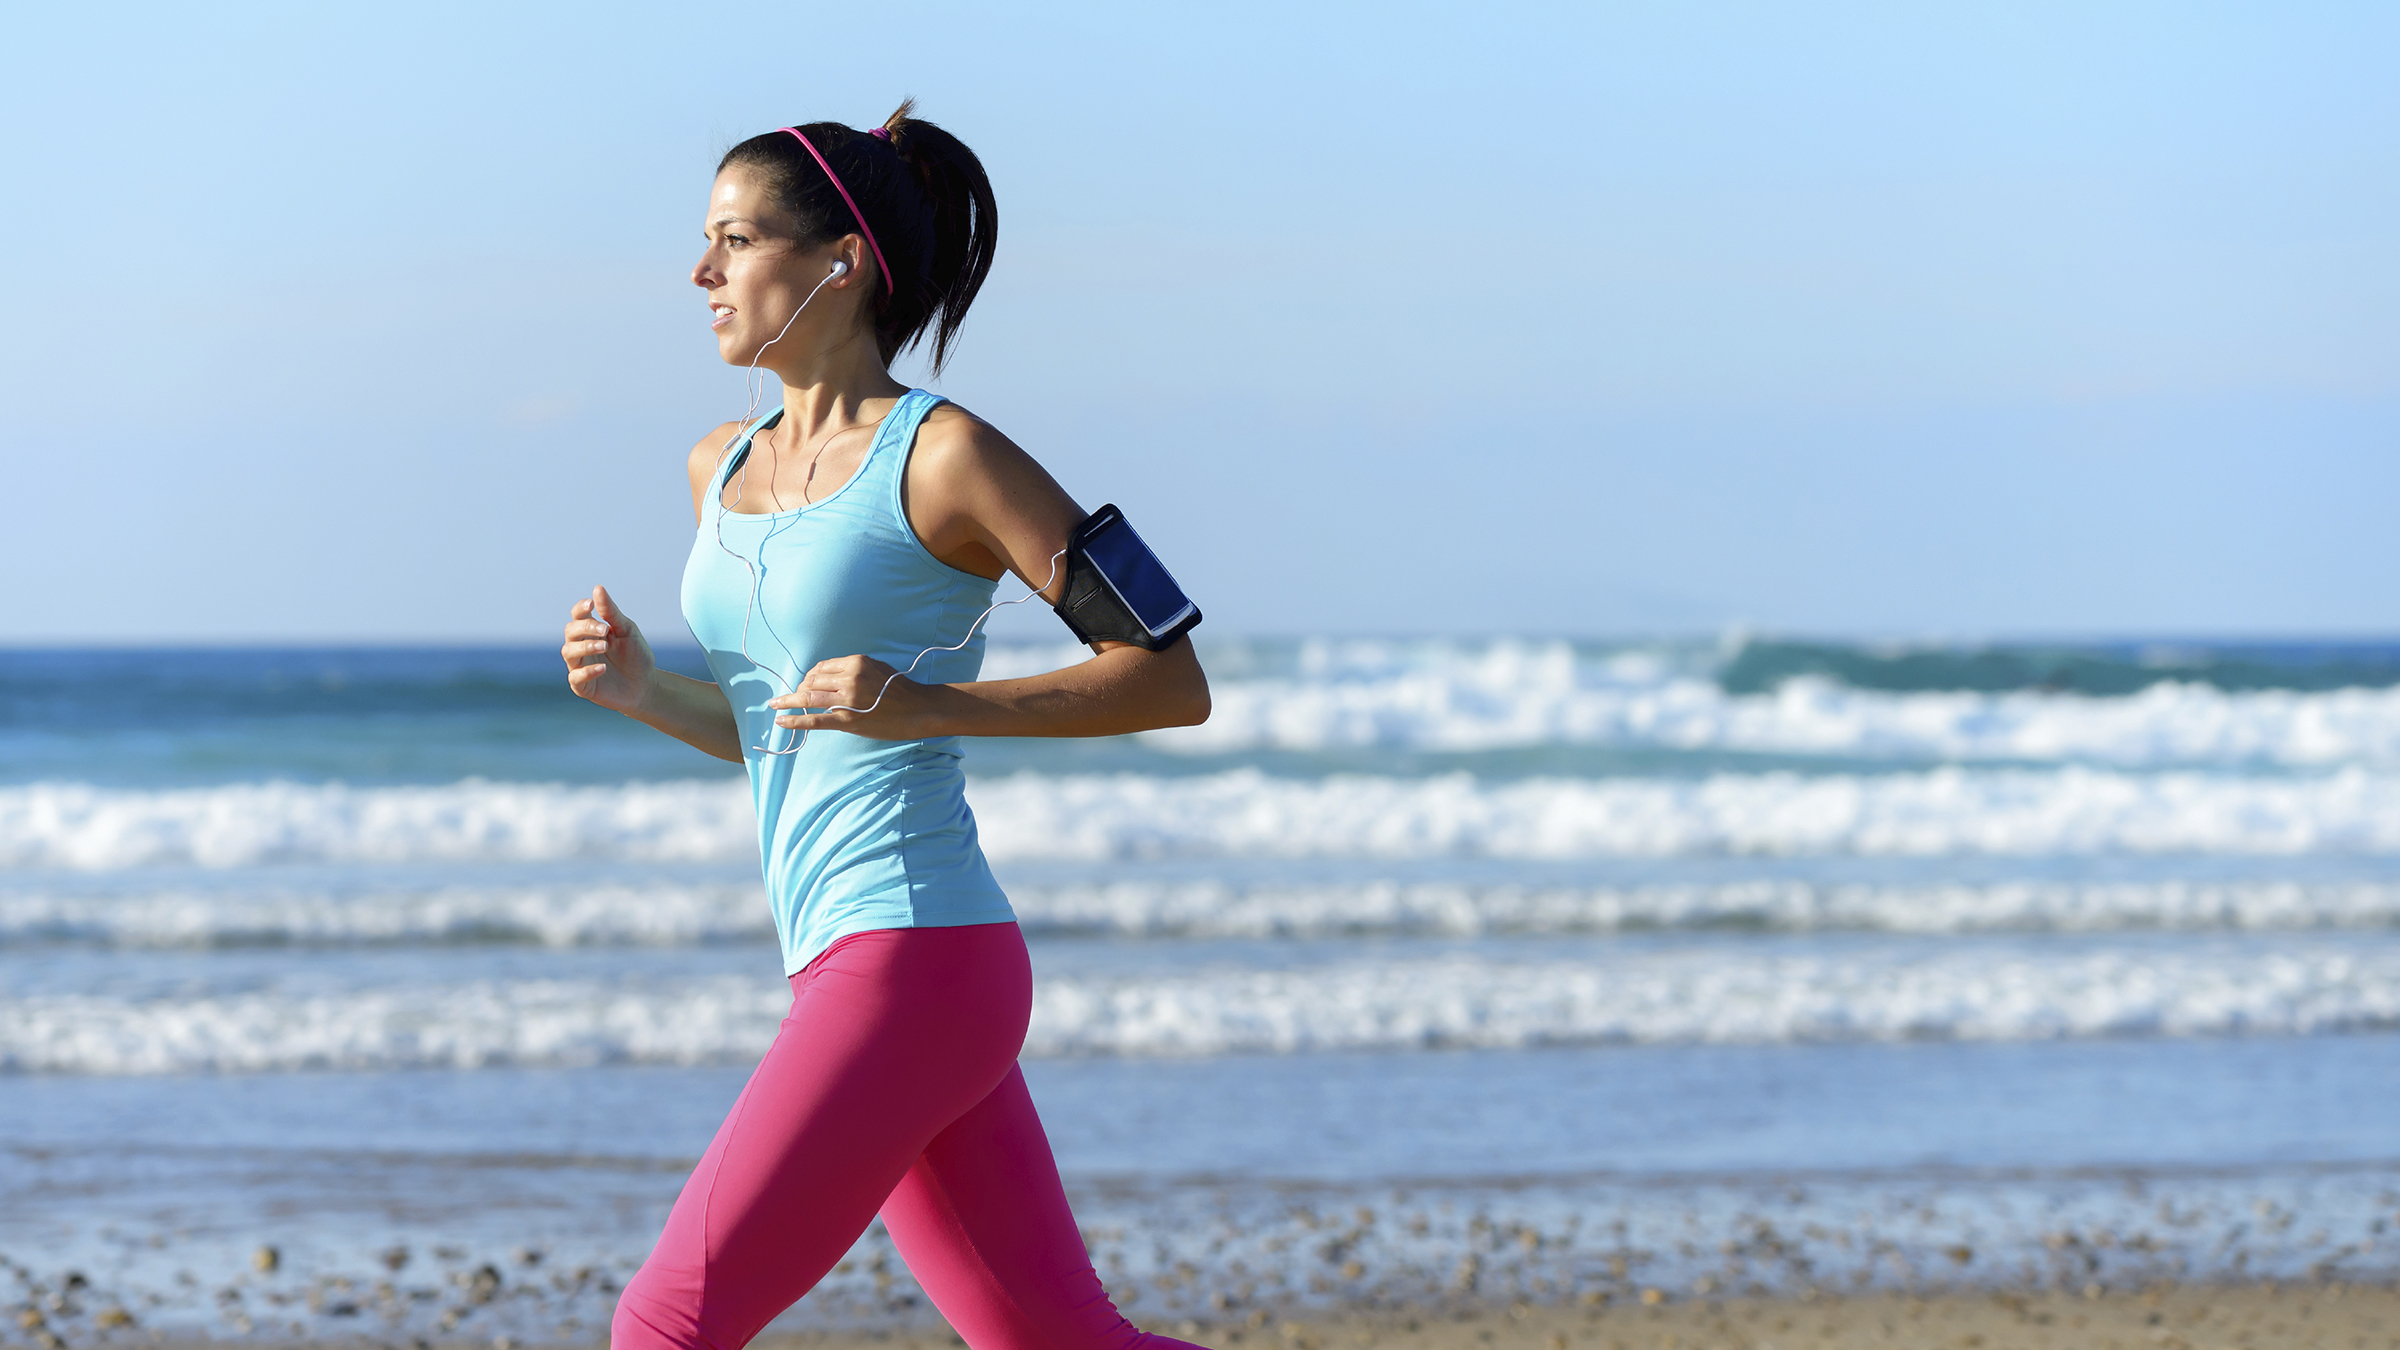 Fitness woman on running workout at the beach on summer. Sporty girl wearing earphones and sport armband for listening smartphone music. Female healthy athlete training outdoors on sea background.